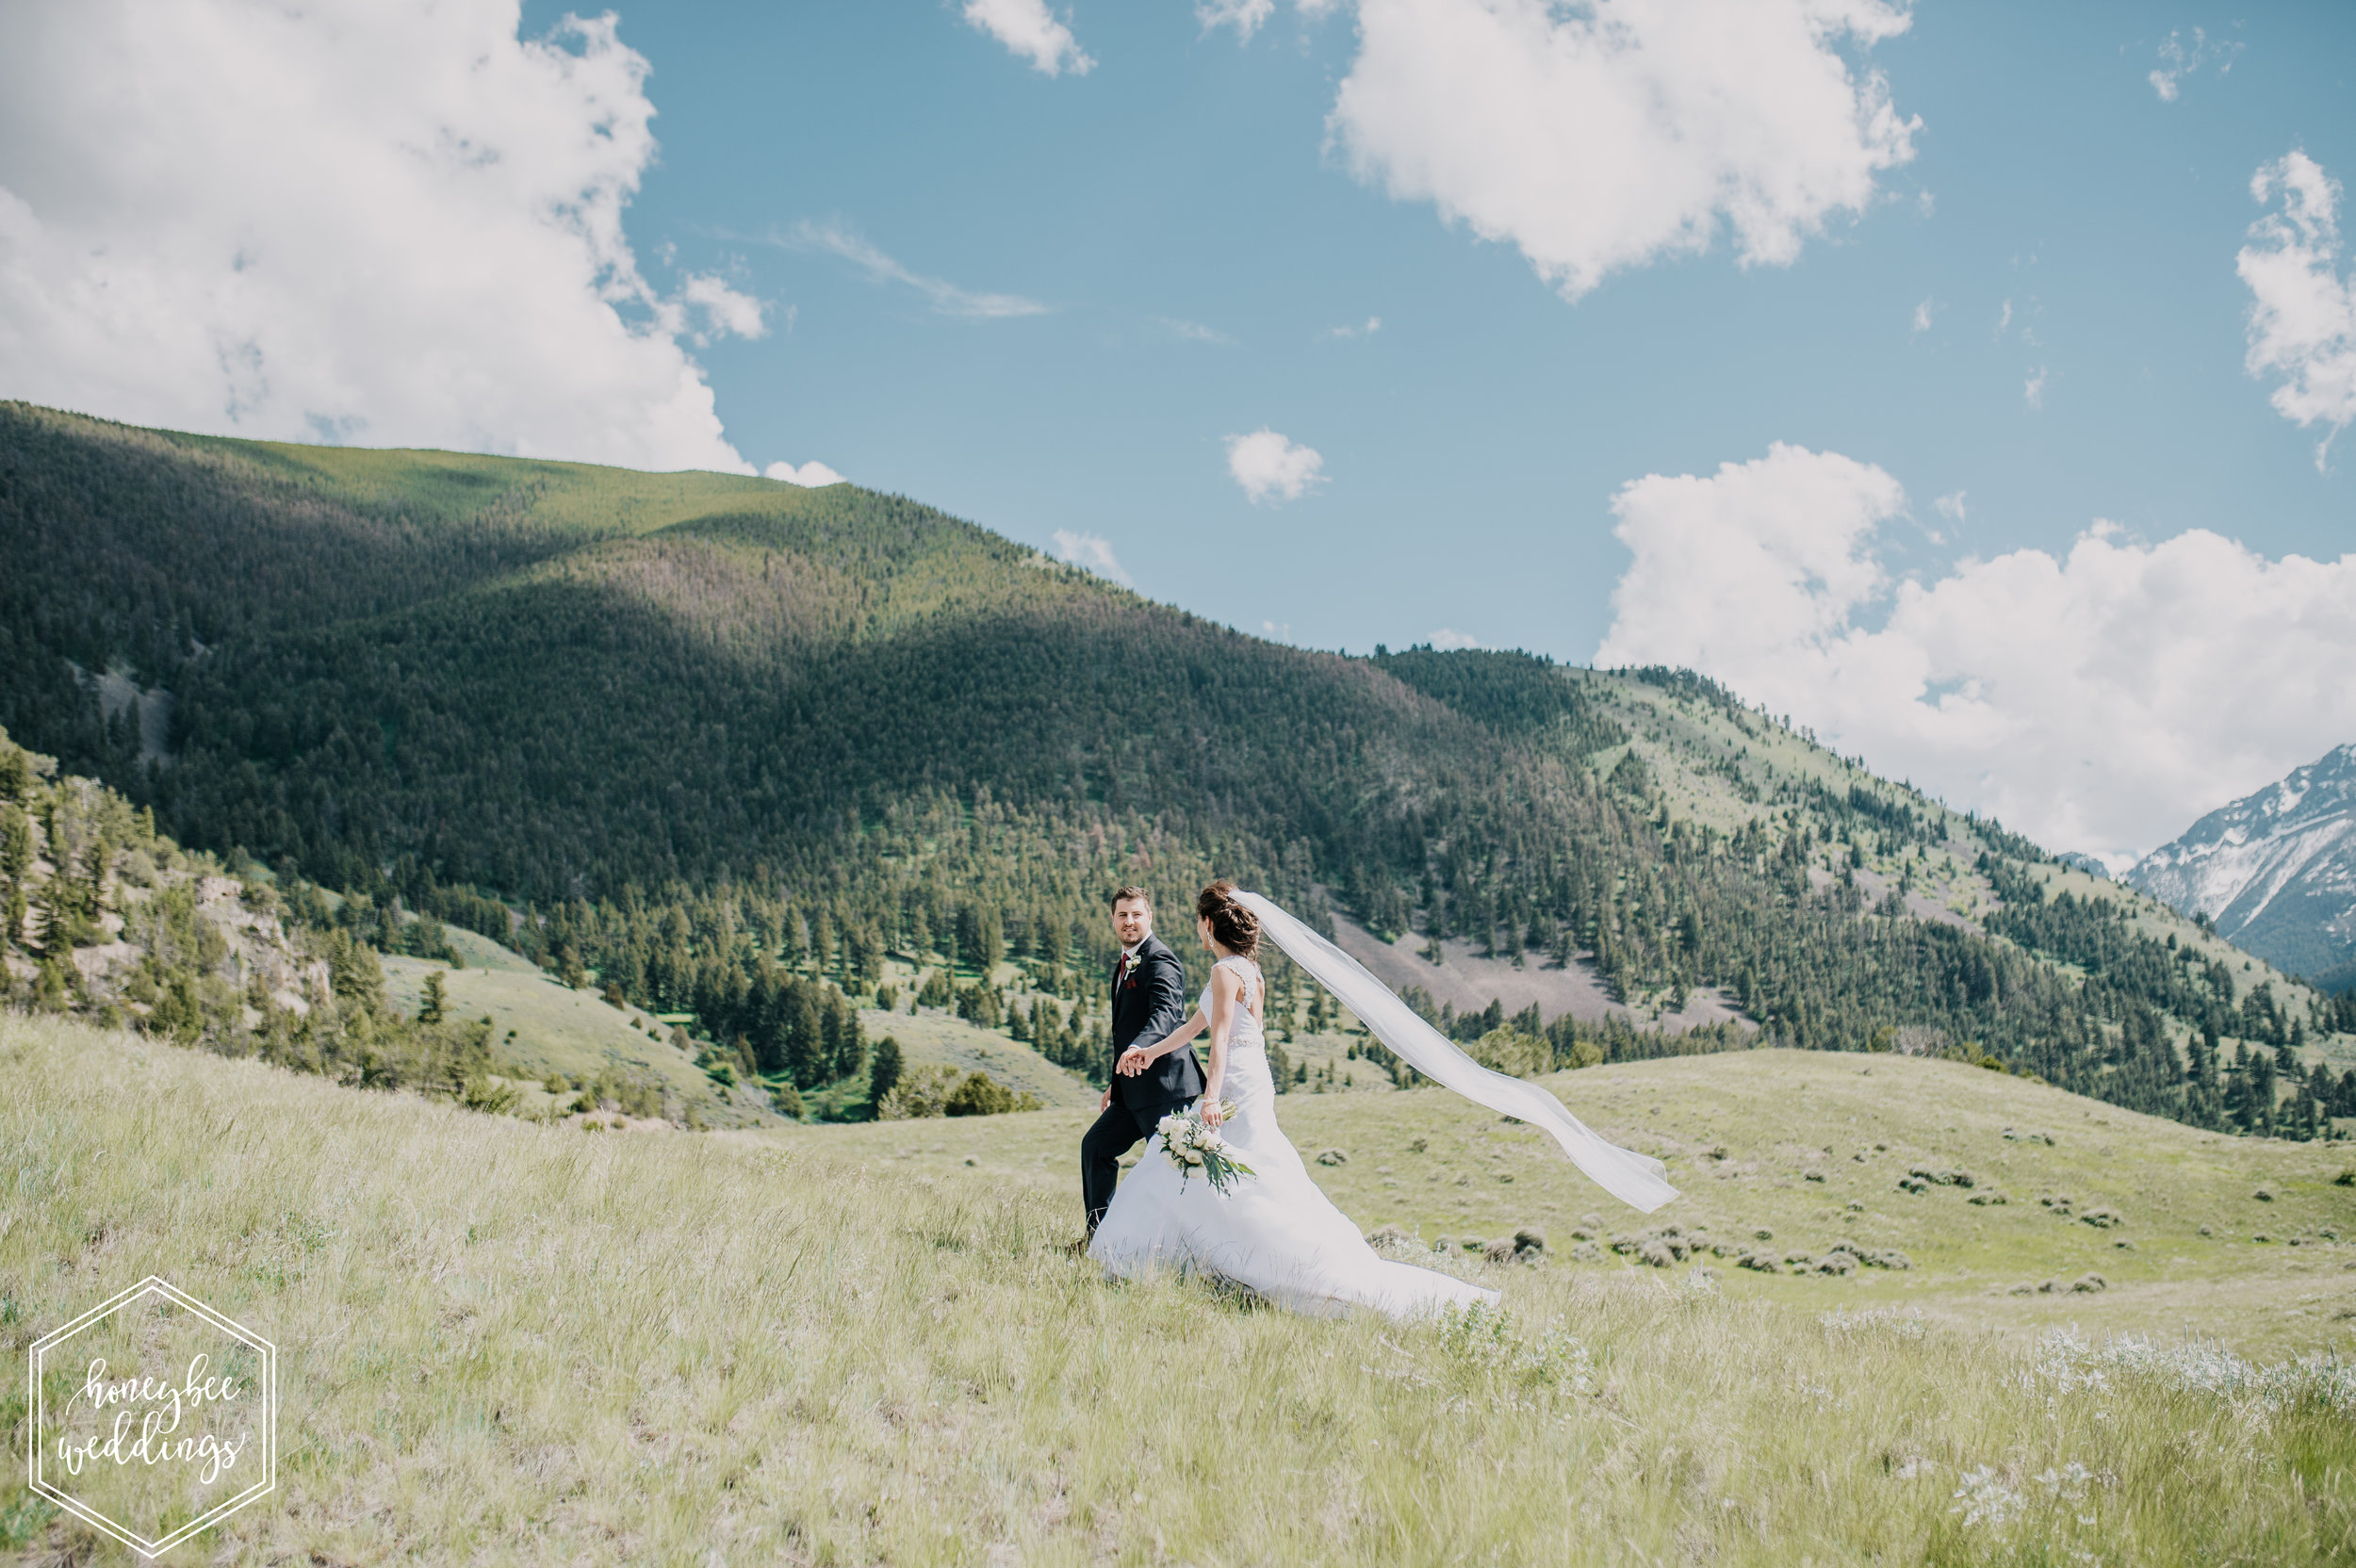 64 Chico Hotsprings Wedding_Bowdino 2018-3115-2.jpg